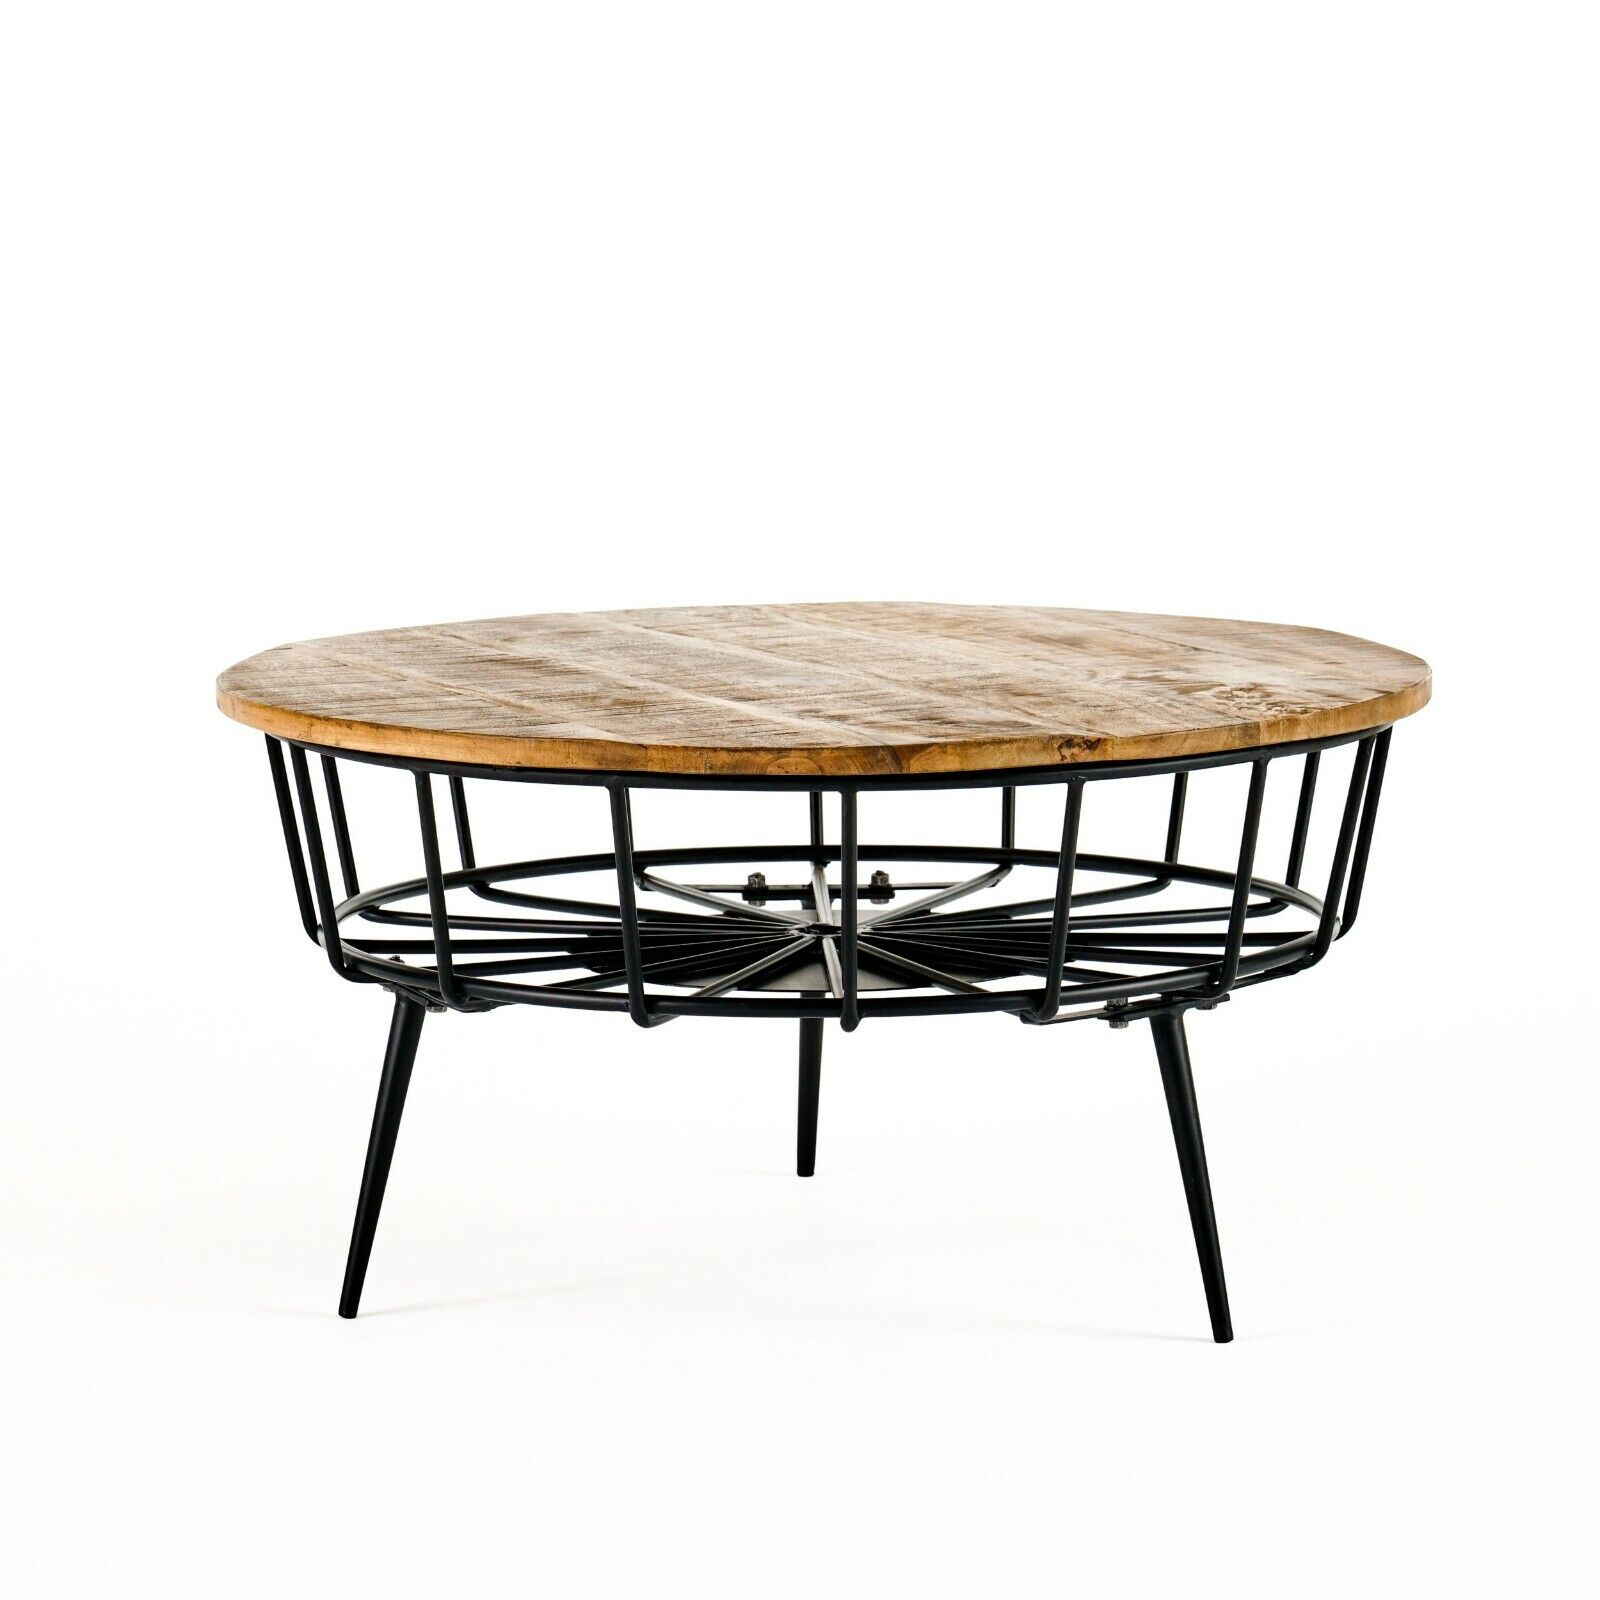 Tomilson Modern Industrial Handcrafted Mango Wood Coffee Table, Natural and Black